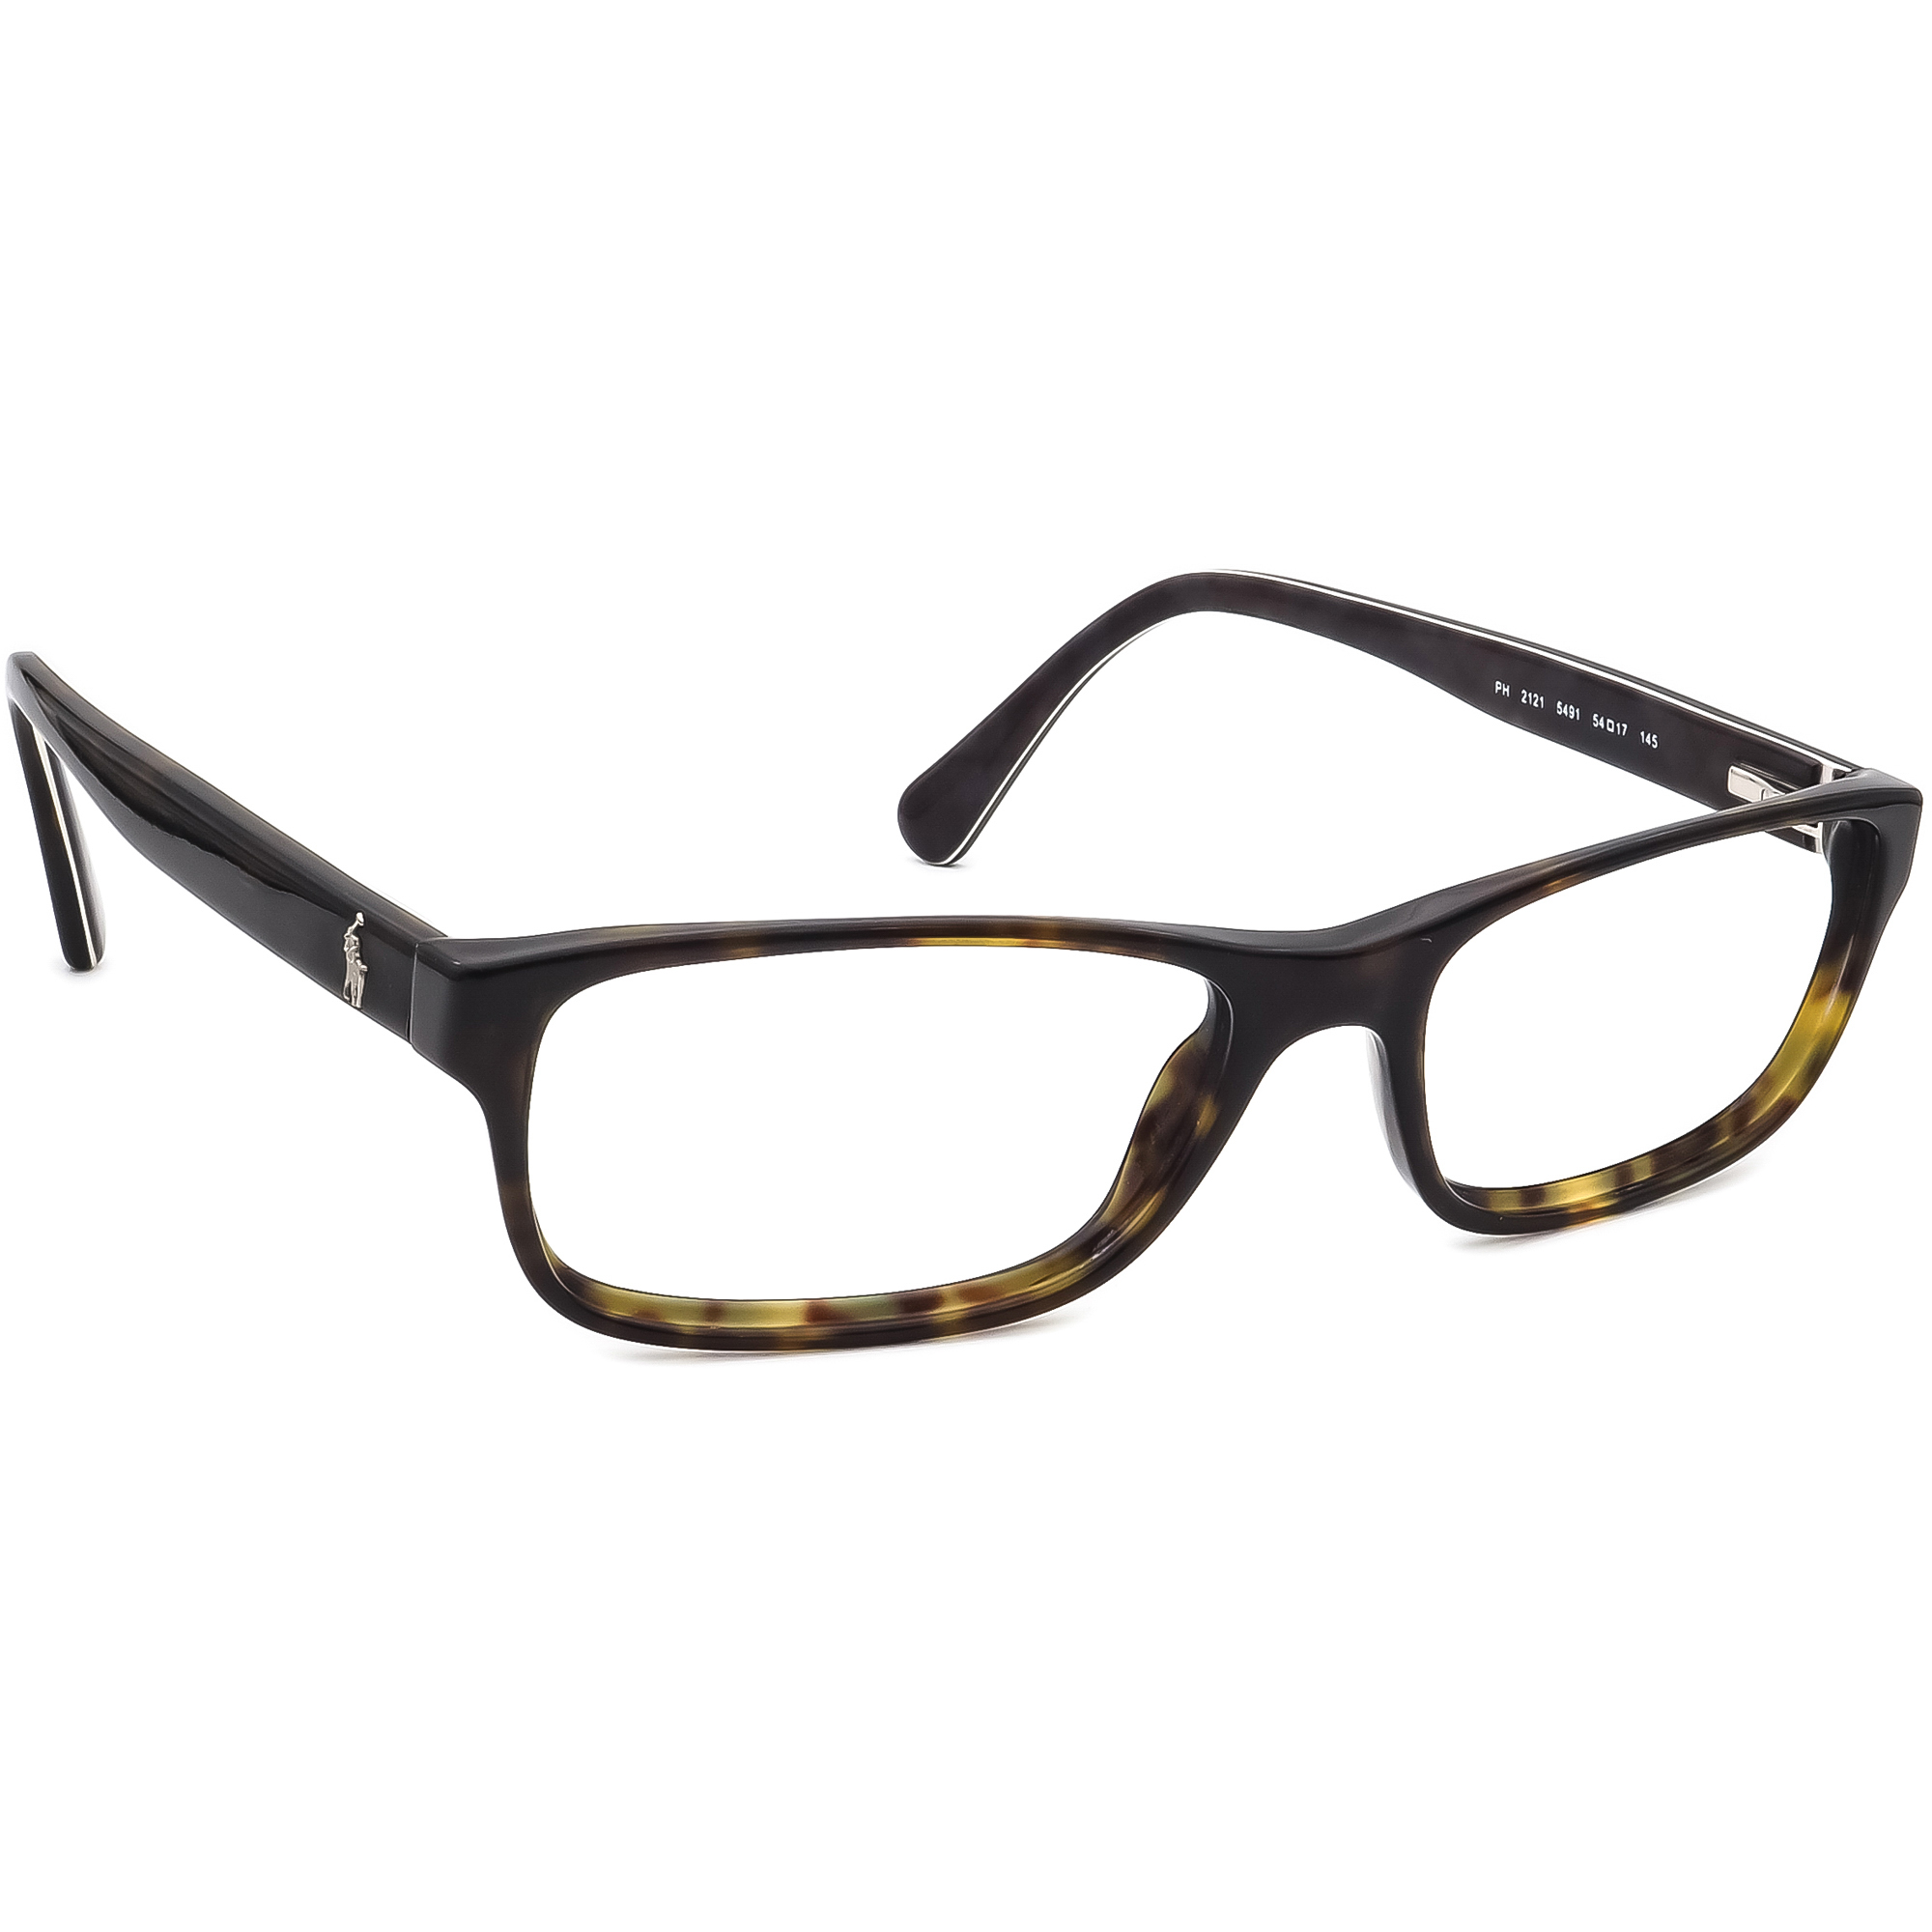 Ralph Lauren Polo Eyeglasses PH 2121 5491 Dark Tortoise Frame 54[]17 145